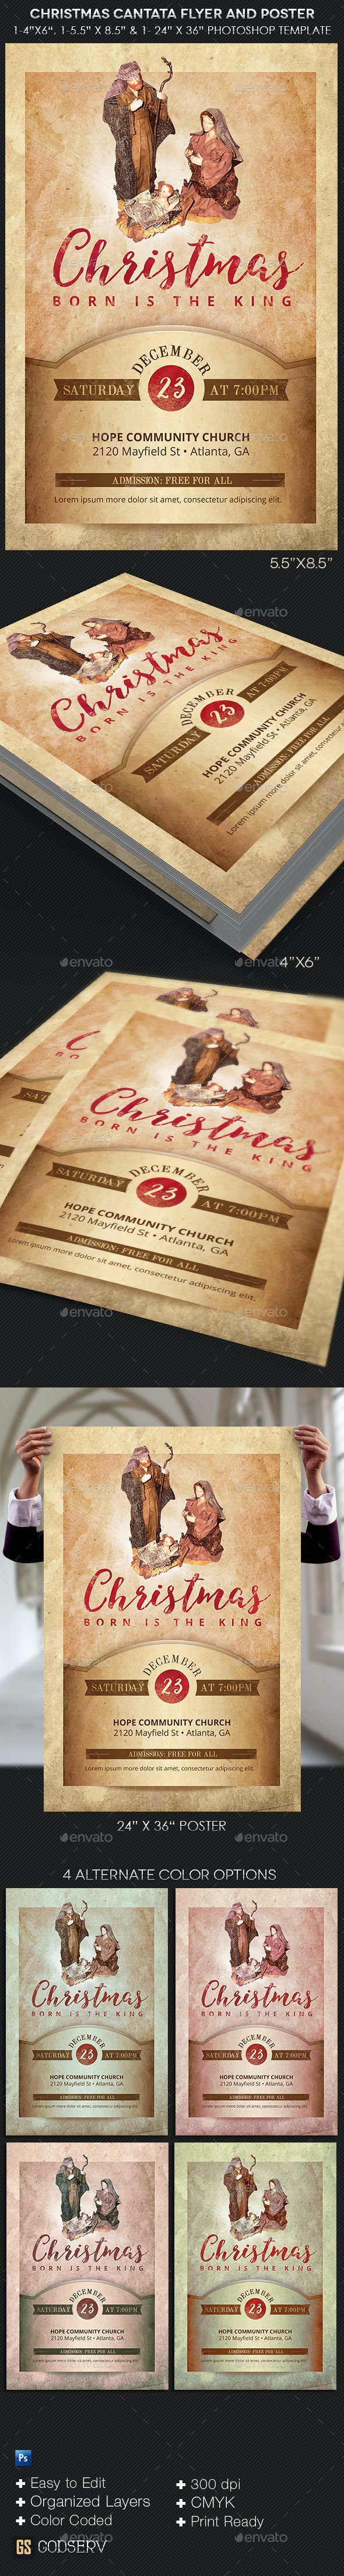 Christmas Cantata Flyer Poster Template - Church Flyers